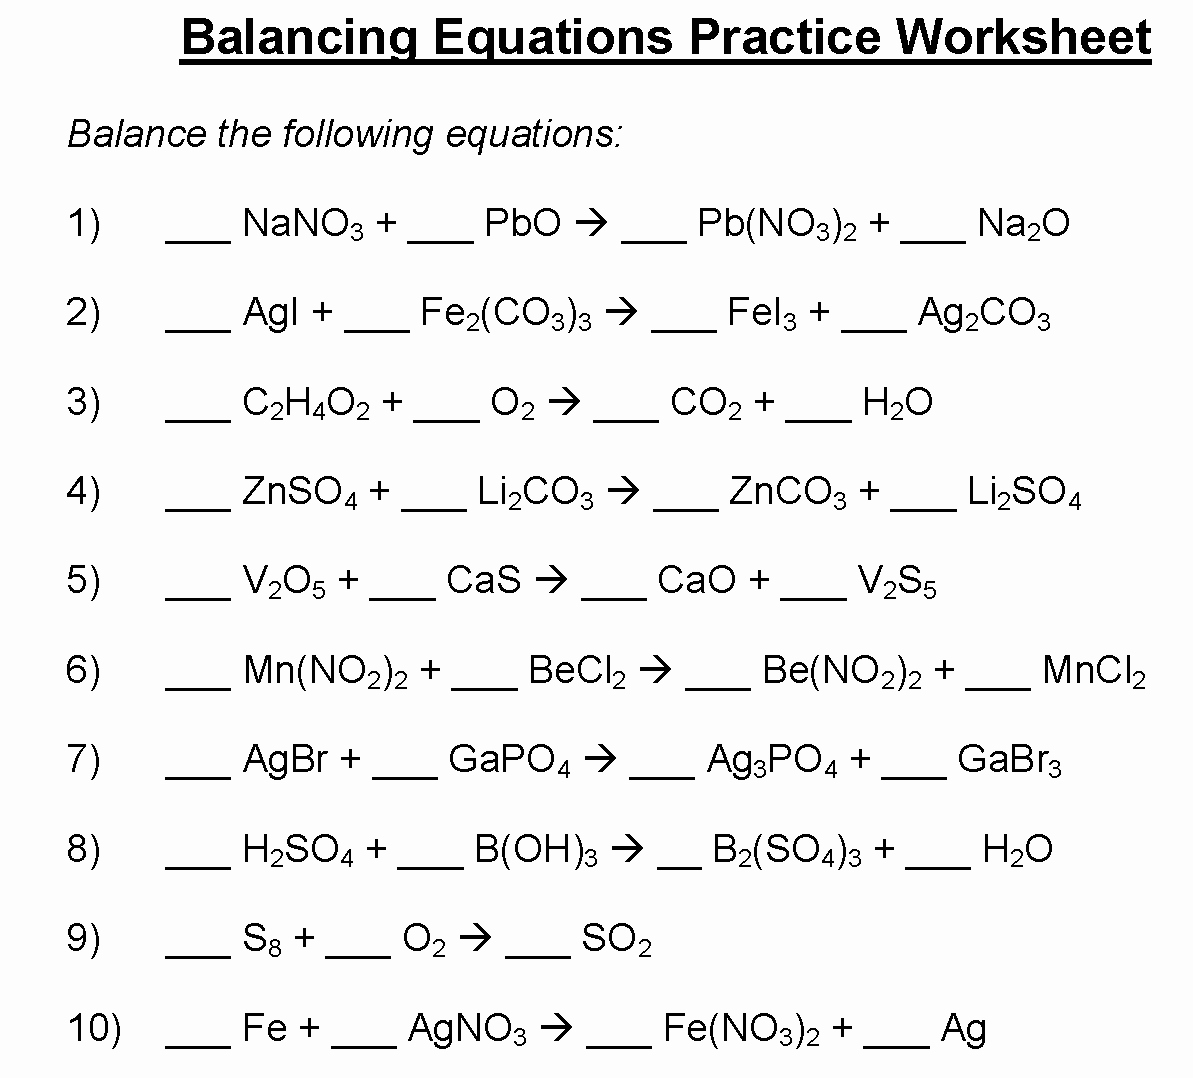 Balancing Equations Practice Worksheet Answers Lovely Download Balancing Equations Worksheet